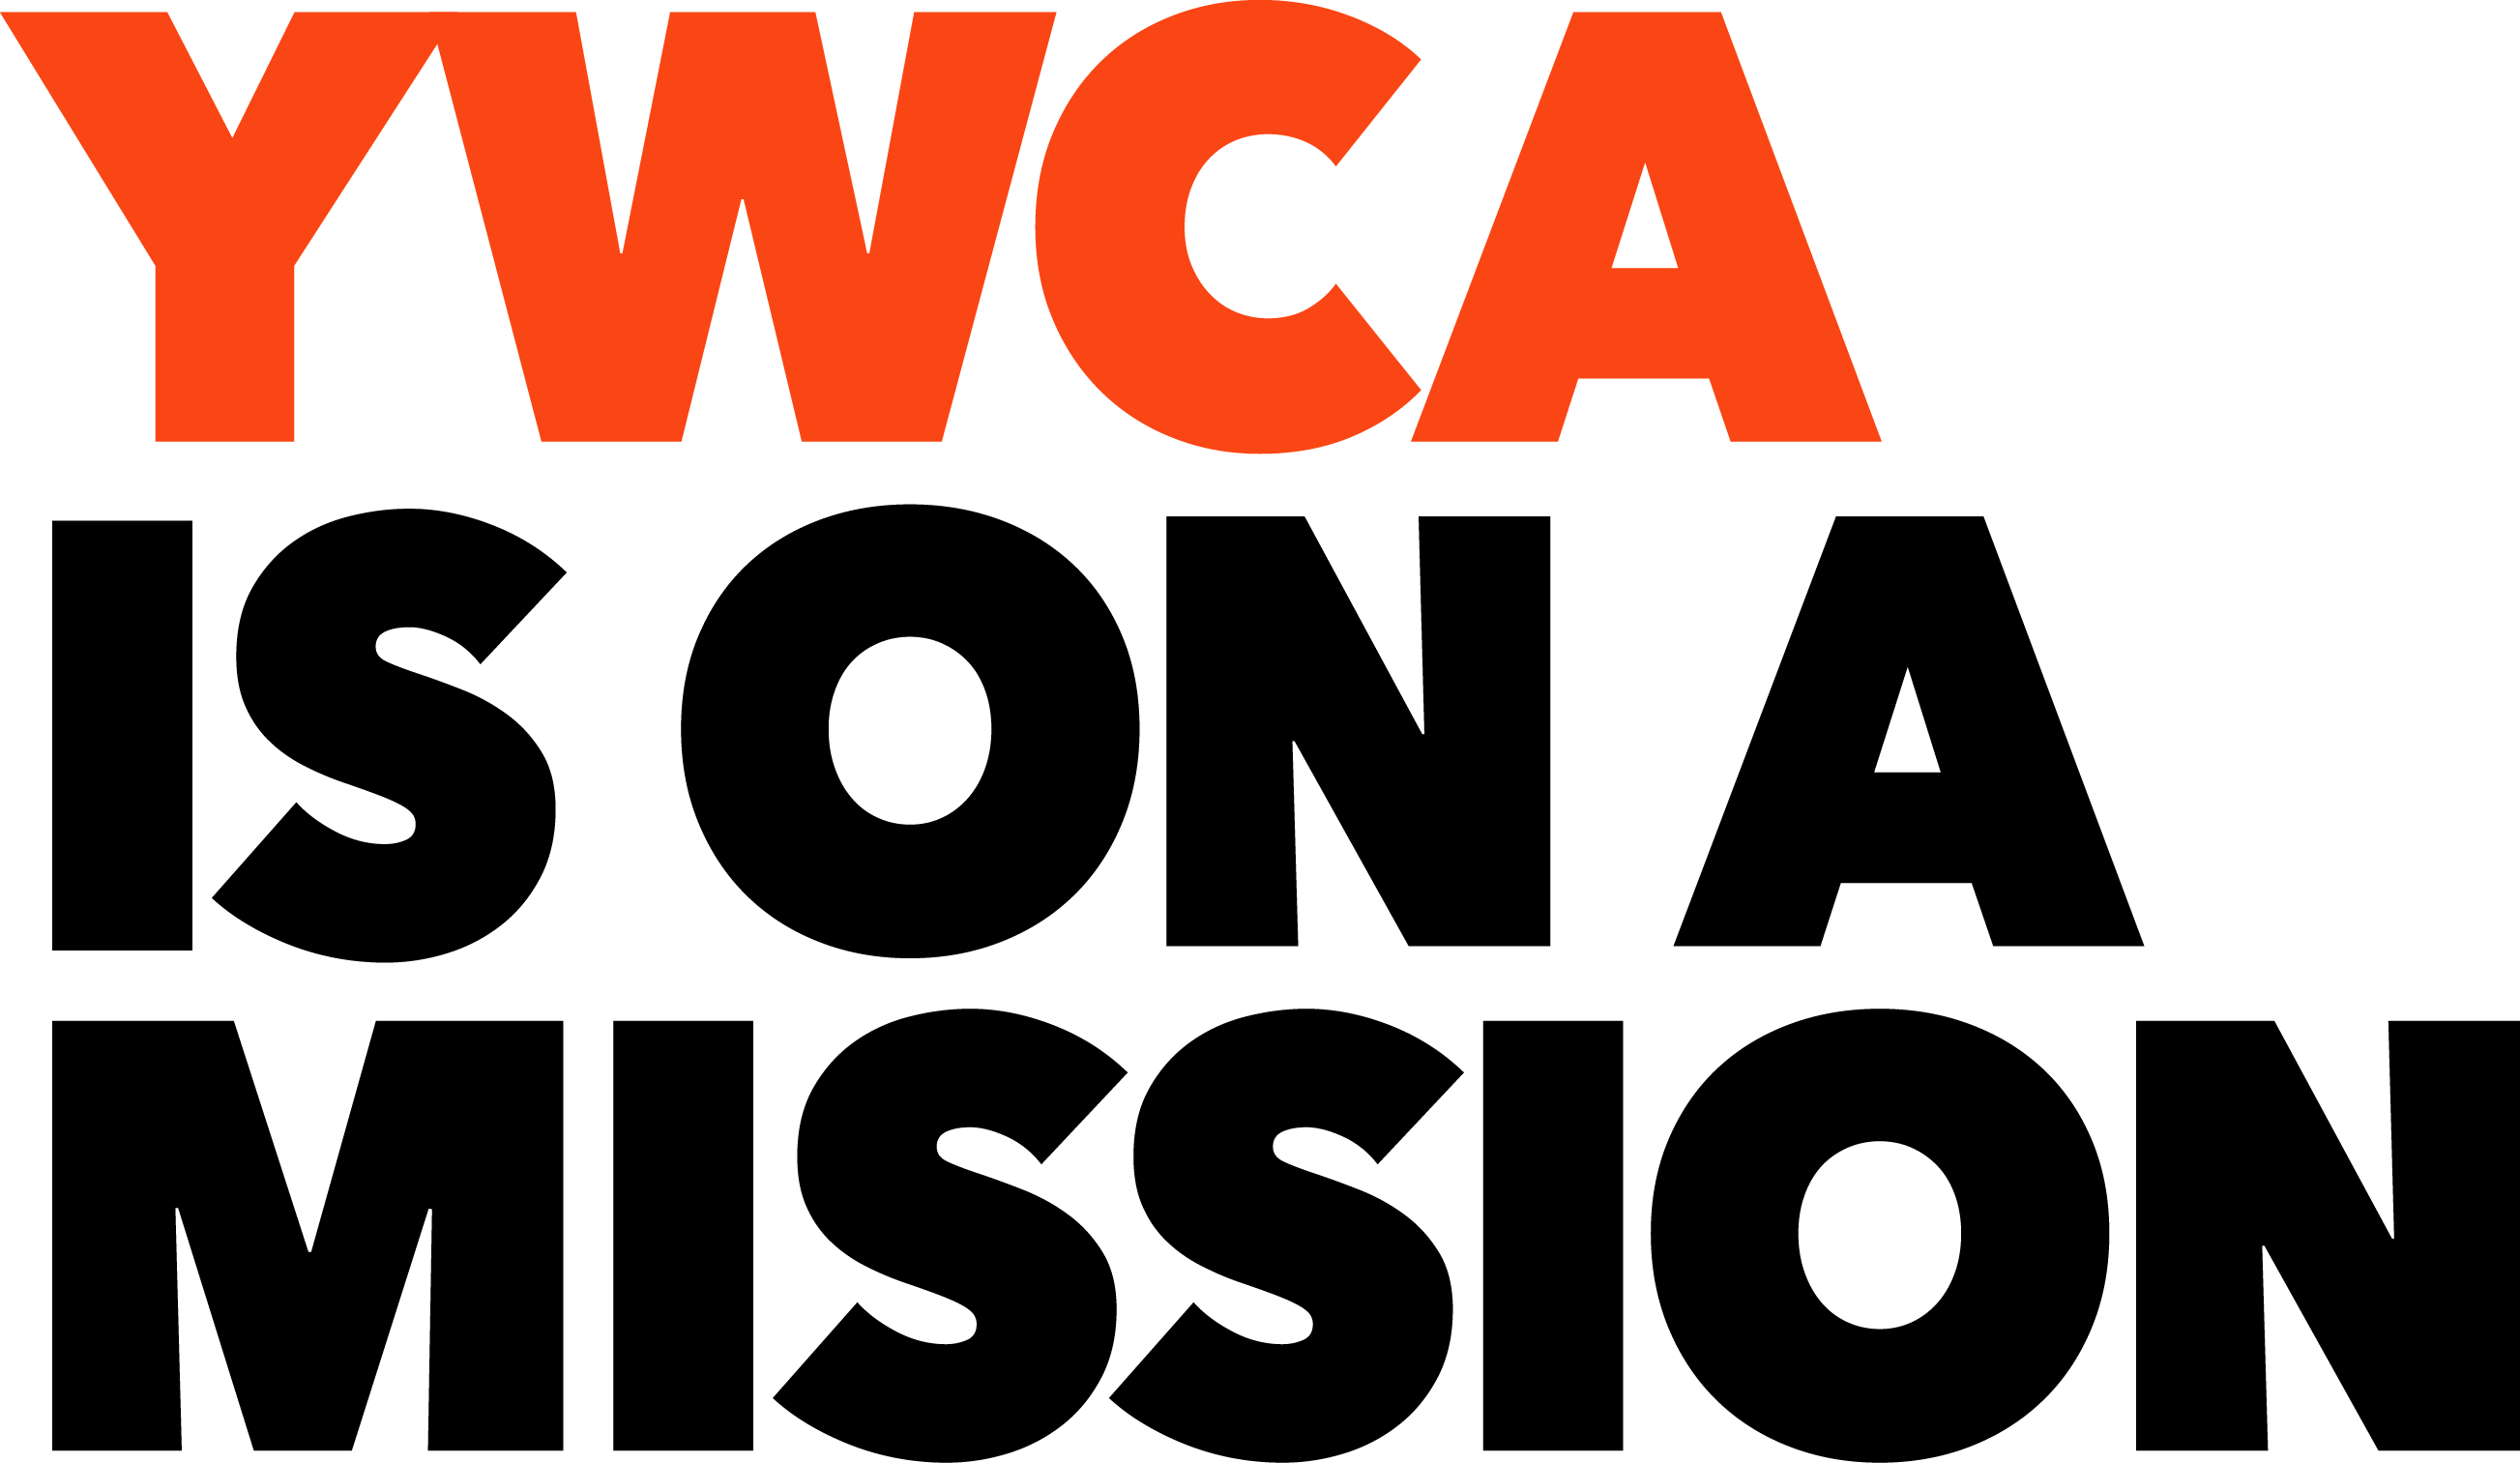 YWCA_MISSION_STACKED_RGB.png